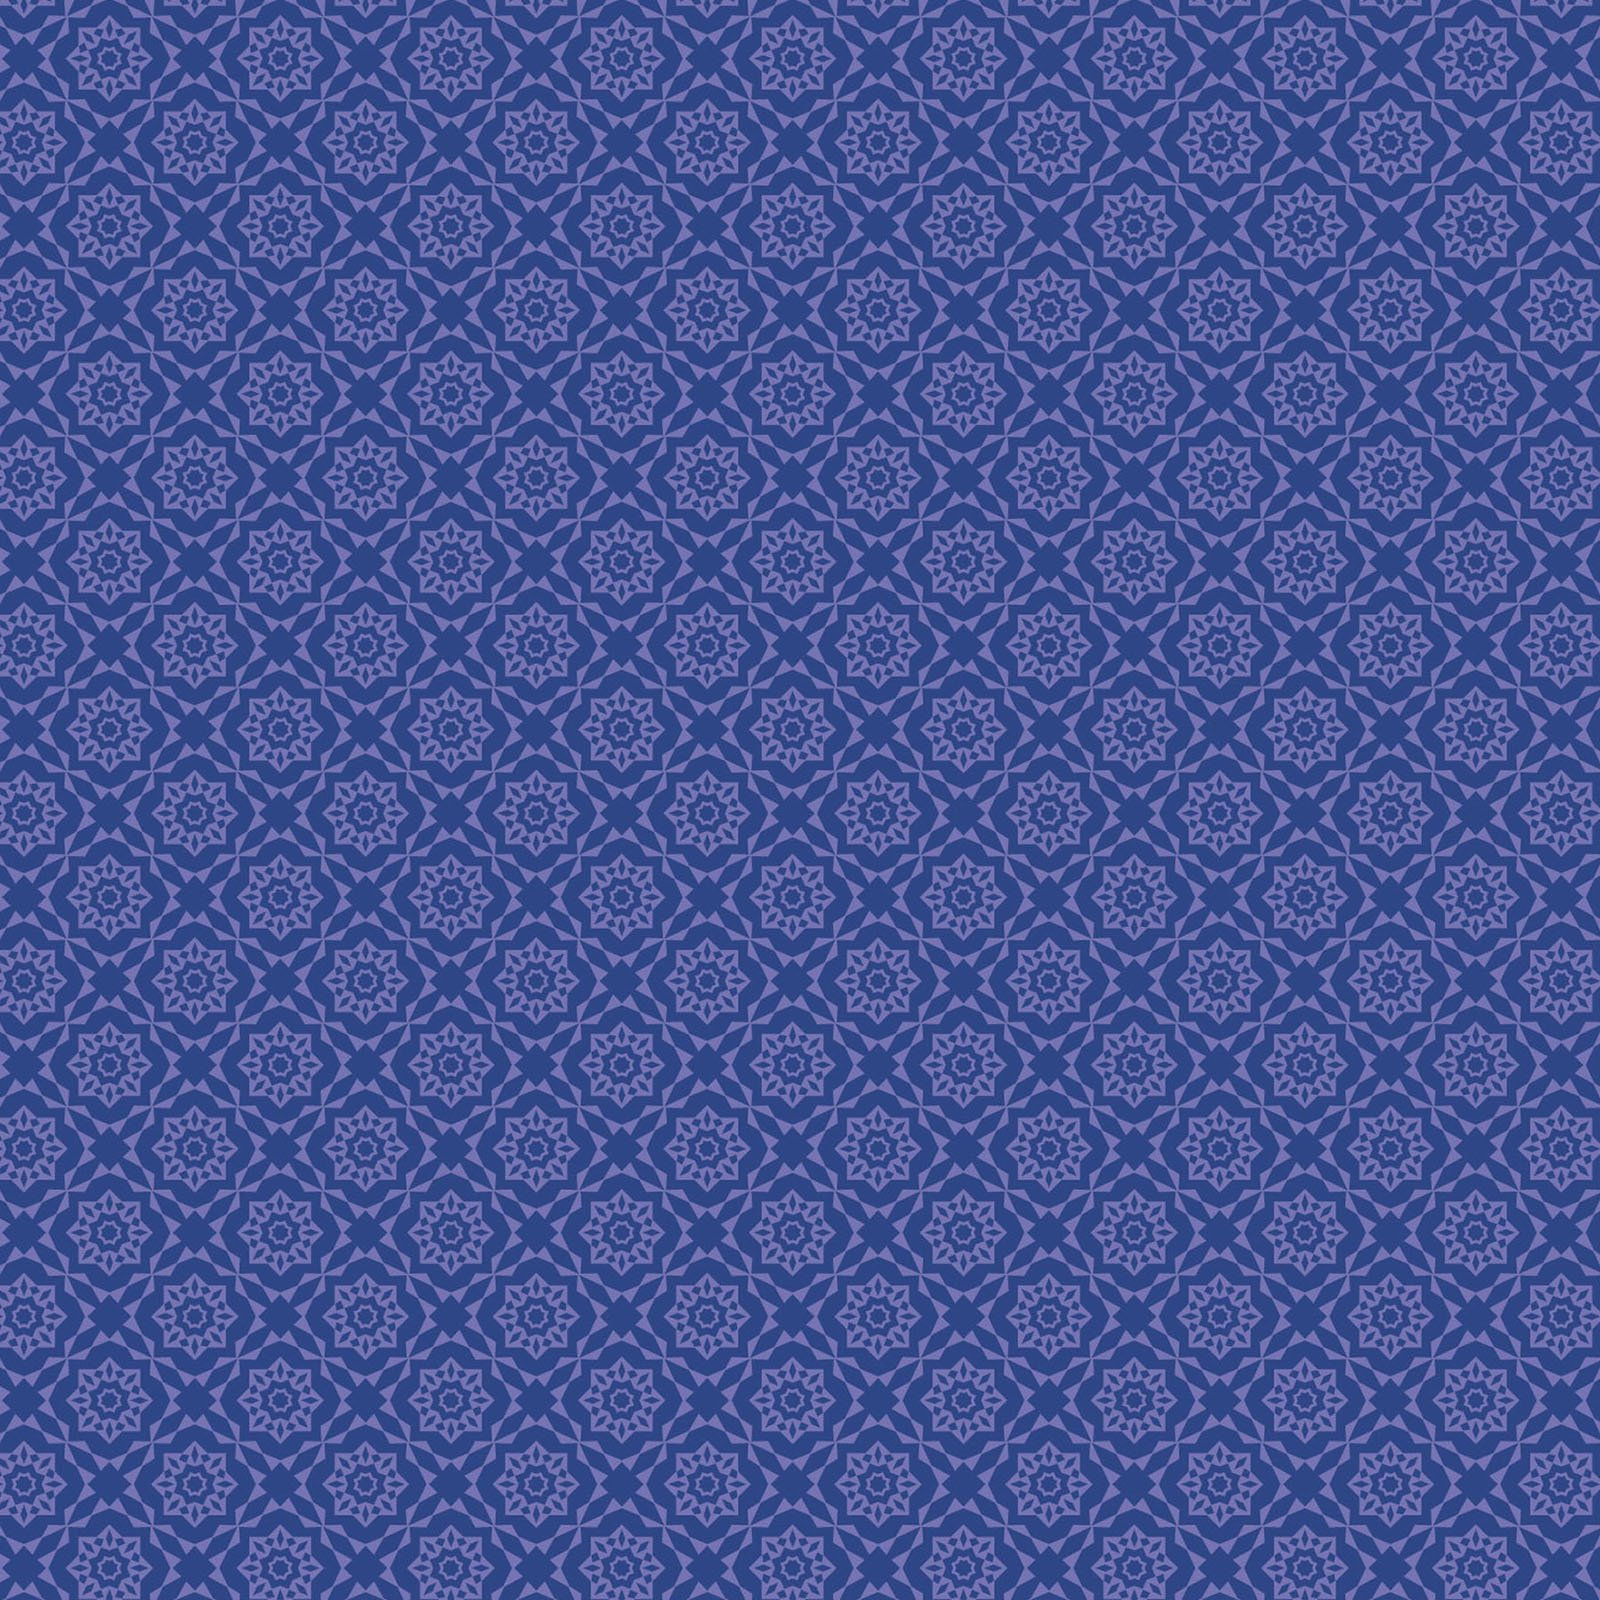 WHIM-4409 BV - WHIMSY BY HANG TIGHT STUDIO MATTONELLE BLUE/VIOLET